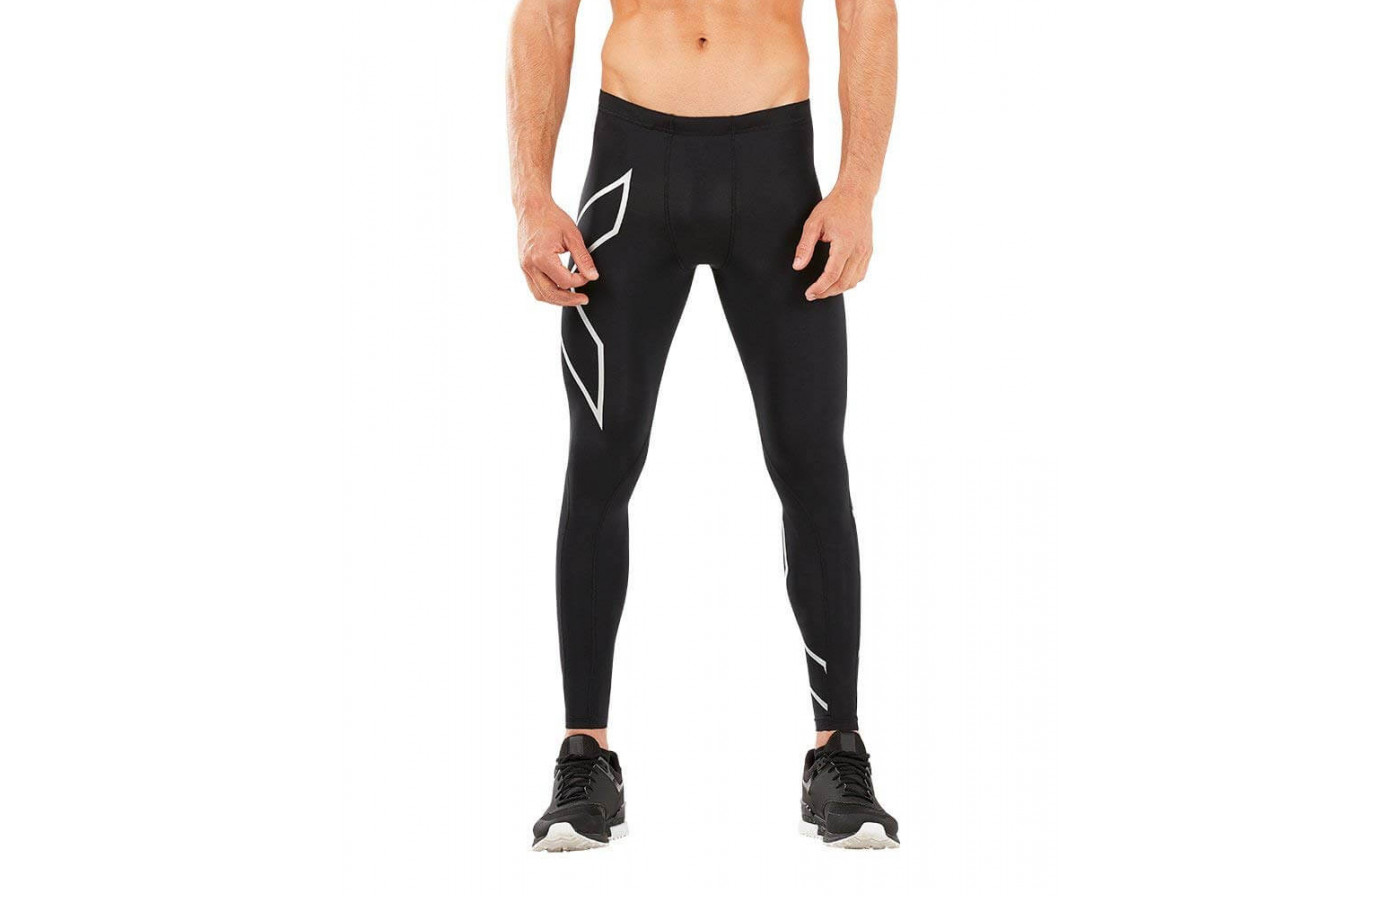 2XU Compression Tights can wick away moisture and improve blood flow.